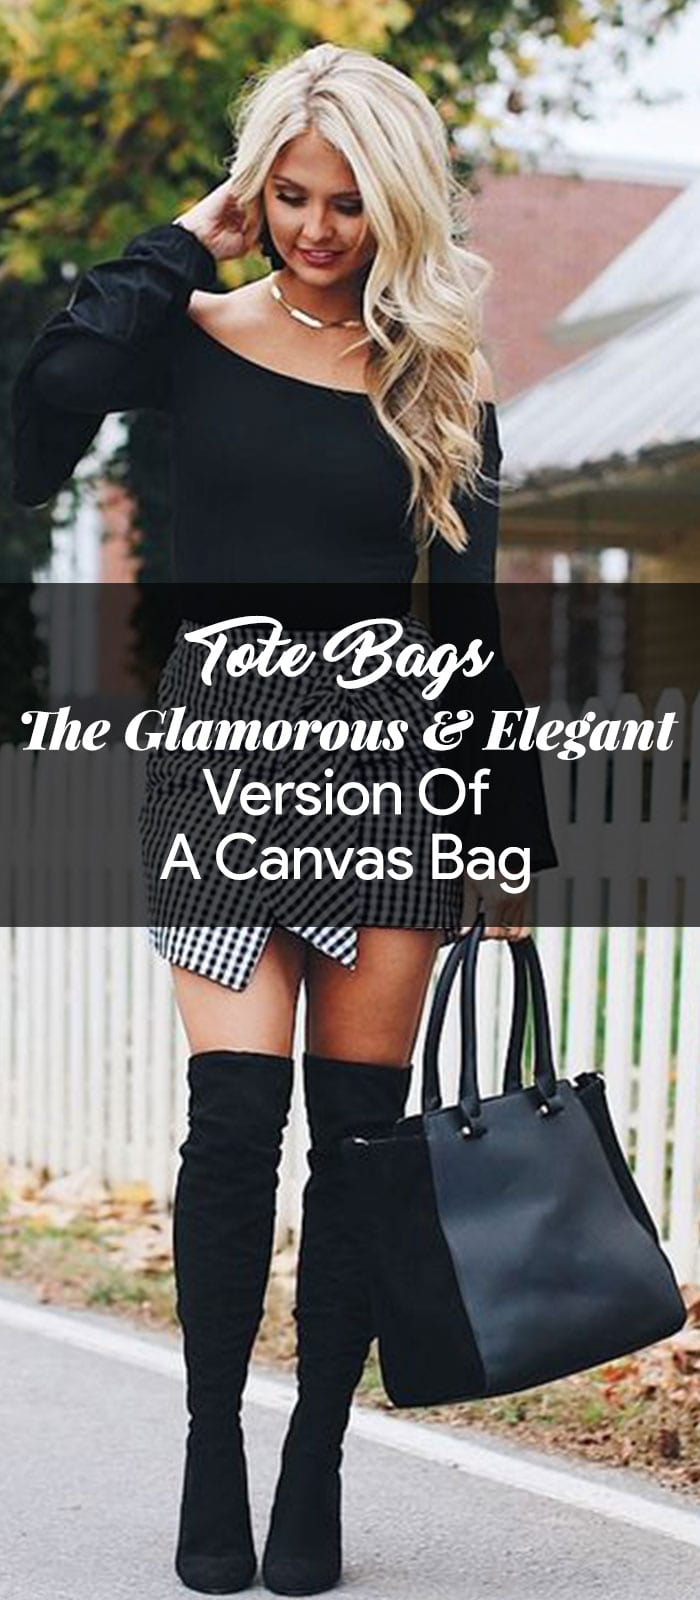 Tote Bags - The Glamorous & Elegant Version Of A Canvas Bag